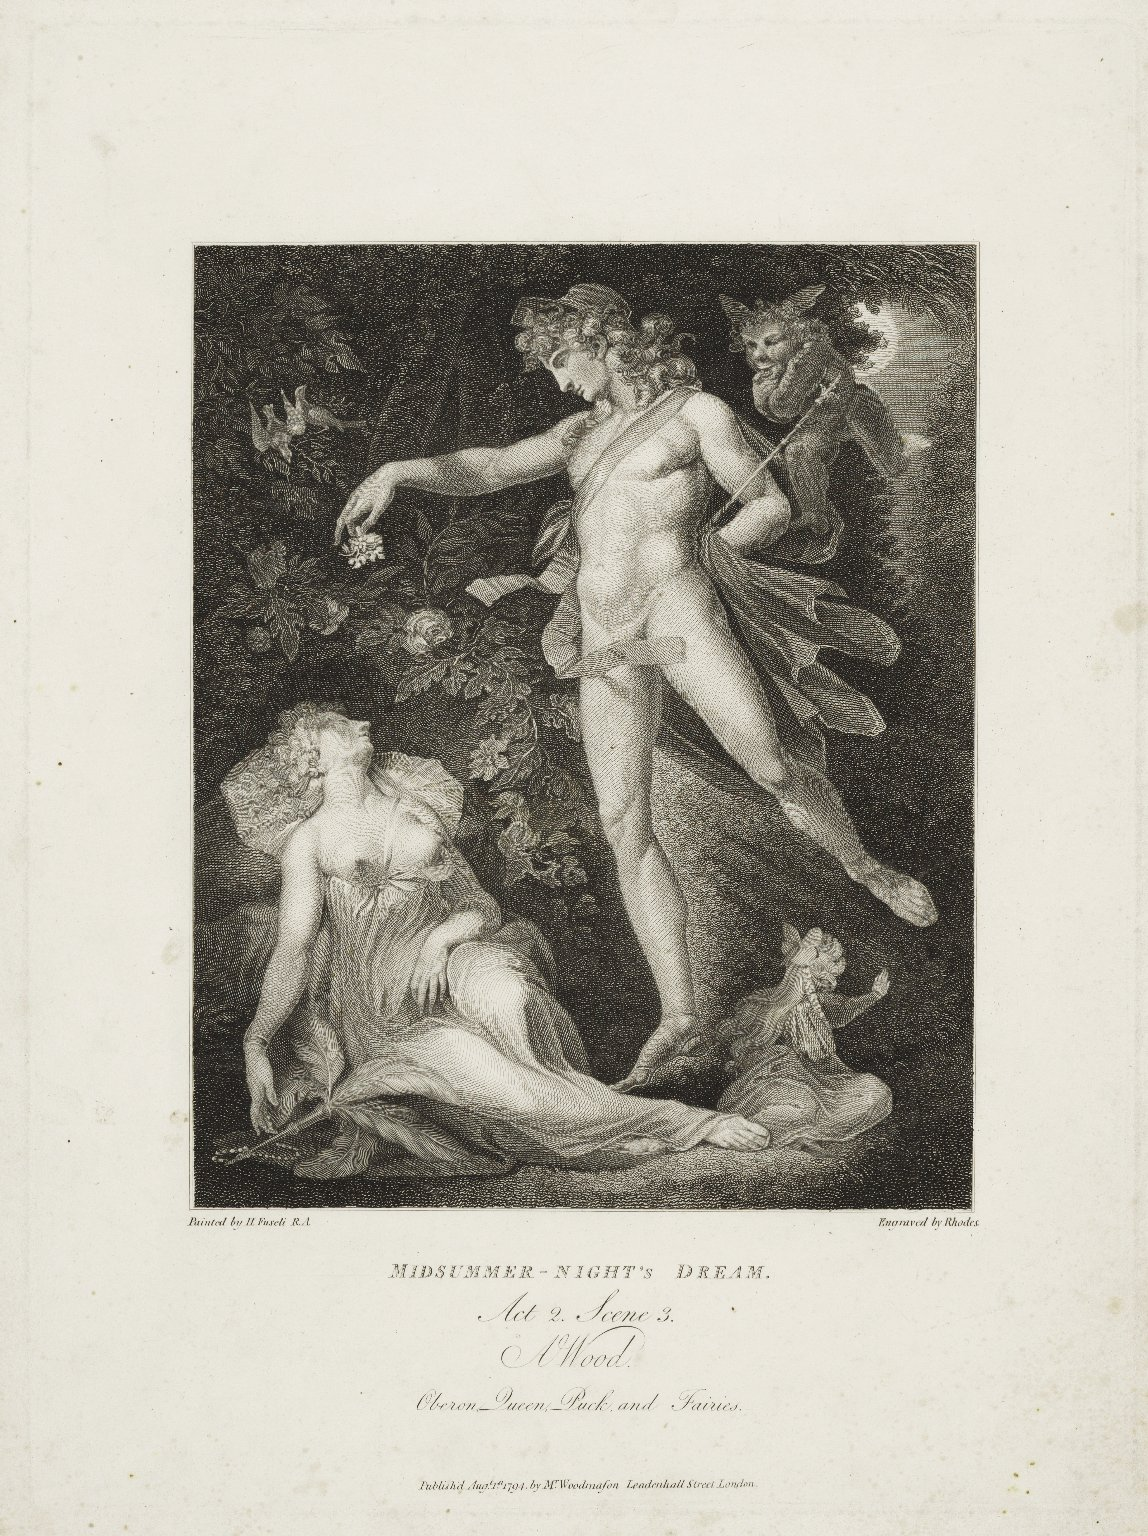 Midsummer-night's dream, act 2, scene 3 [i.e. 2] a wood, Oberon, Queen, Puck, and fairies [graphic] / painted by H. Fuseli R.A. ; engraved by [Richard] Rhodes.